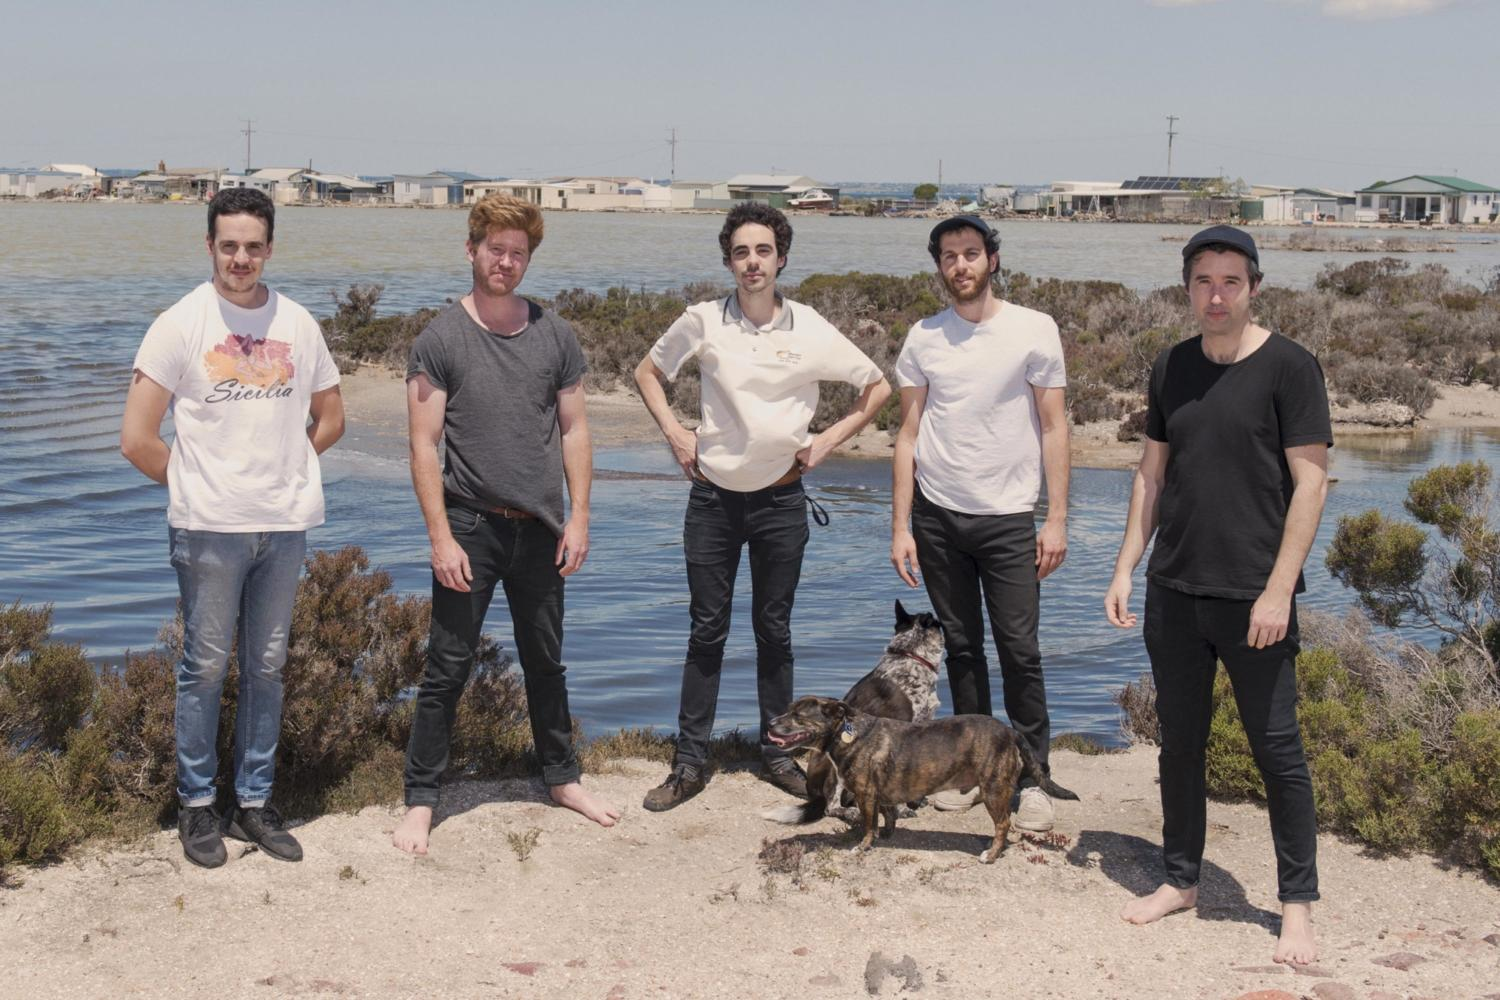 Rolling Blackouts Coastal Fever air new song 'Read My Mind'